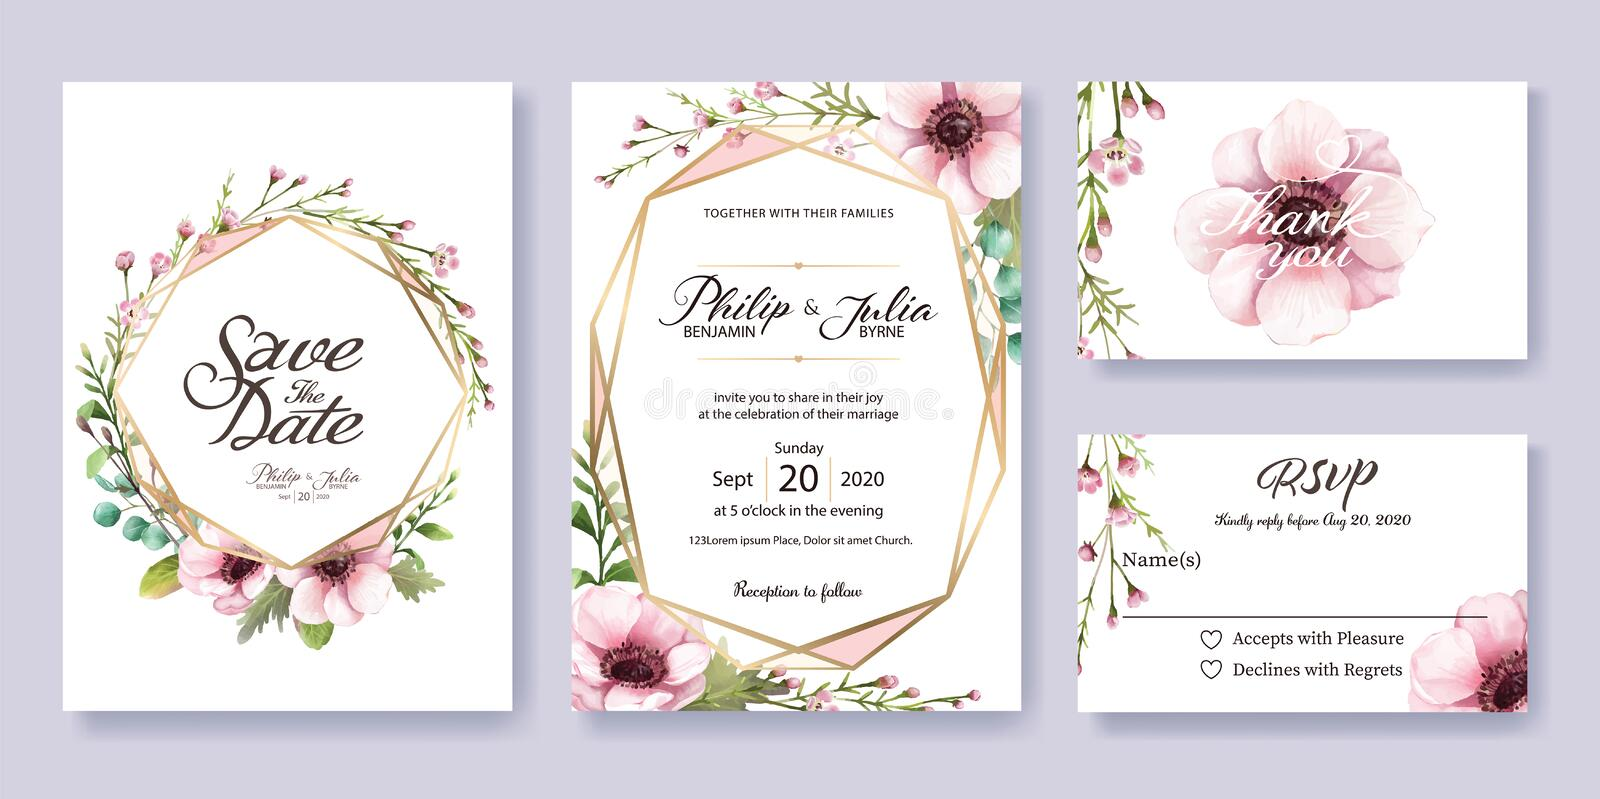 Wedding Invitation, save the date, thank you, rsvp card template royalty free illustration